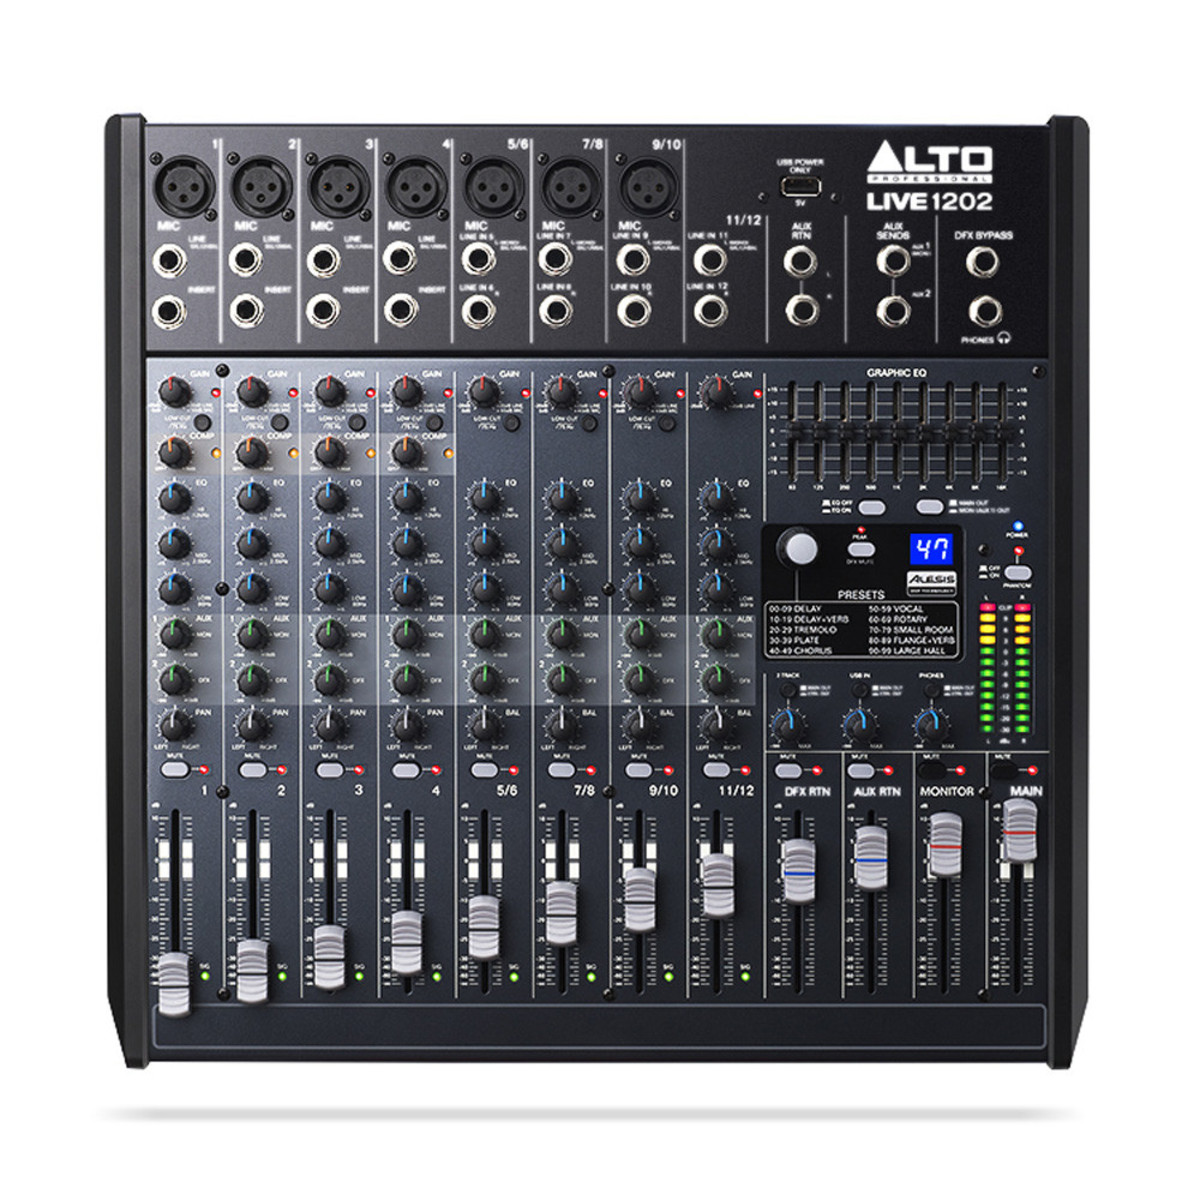 alto 12 live de 1202 table de mixage d 39 usb avec dsp. Black Bedroom Furniture Sets. Home Design Ideas